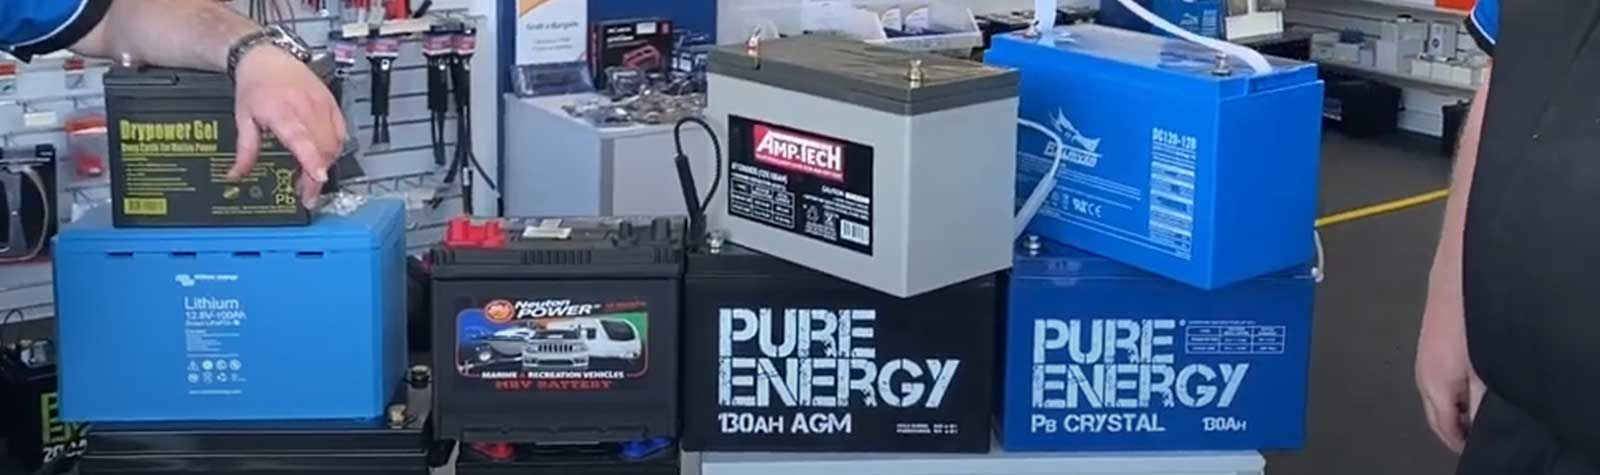 How to tell if a deep cycle battery is bad?